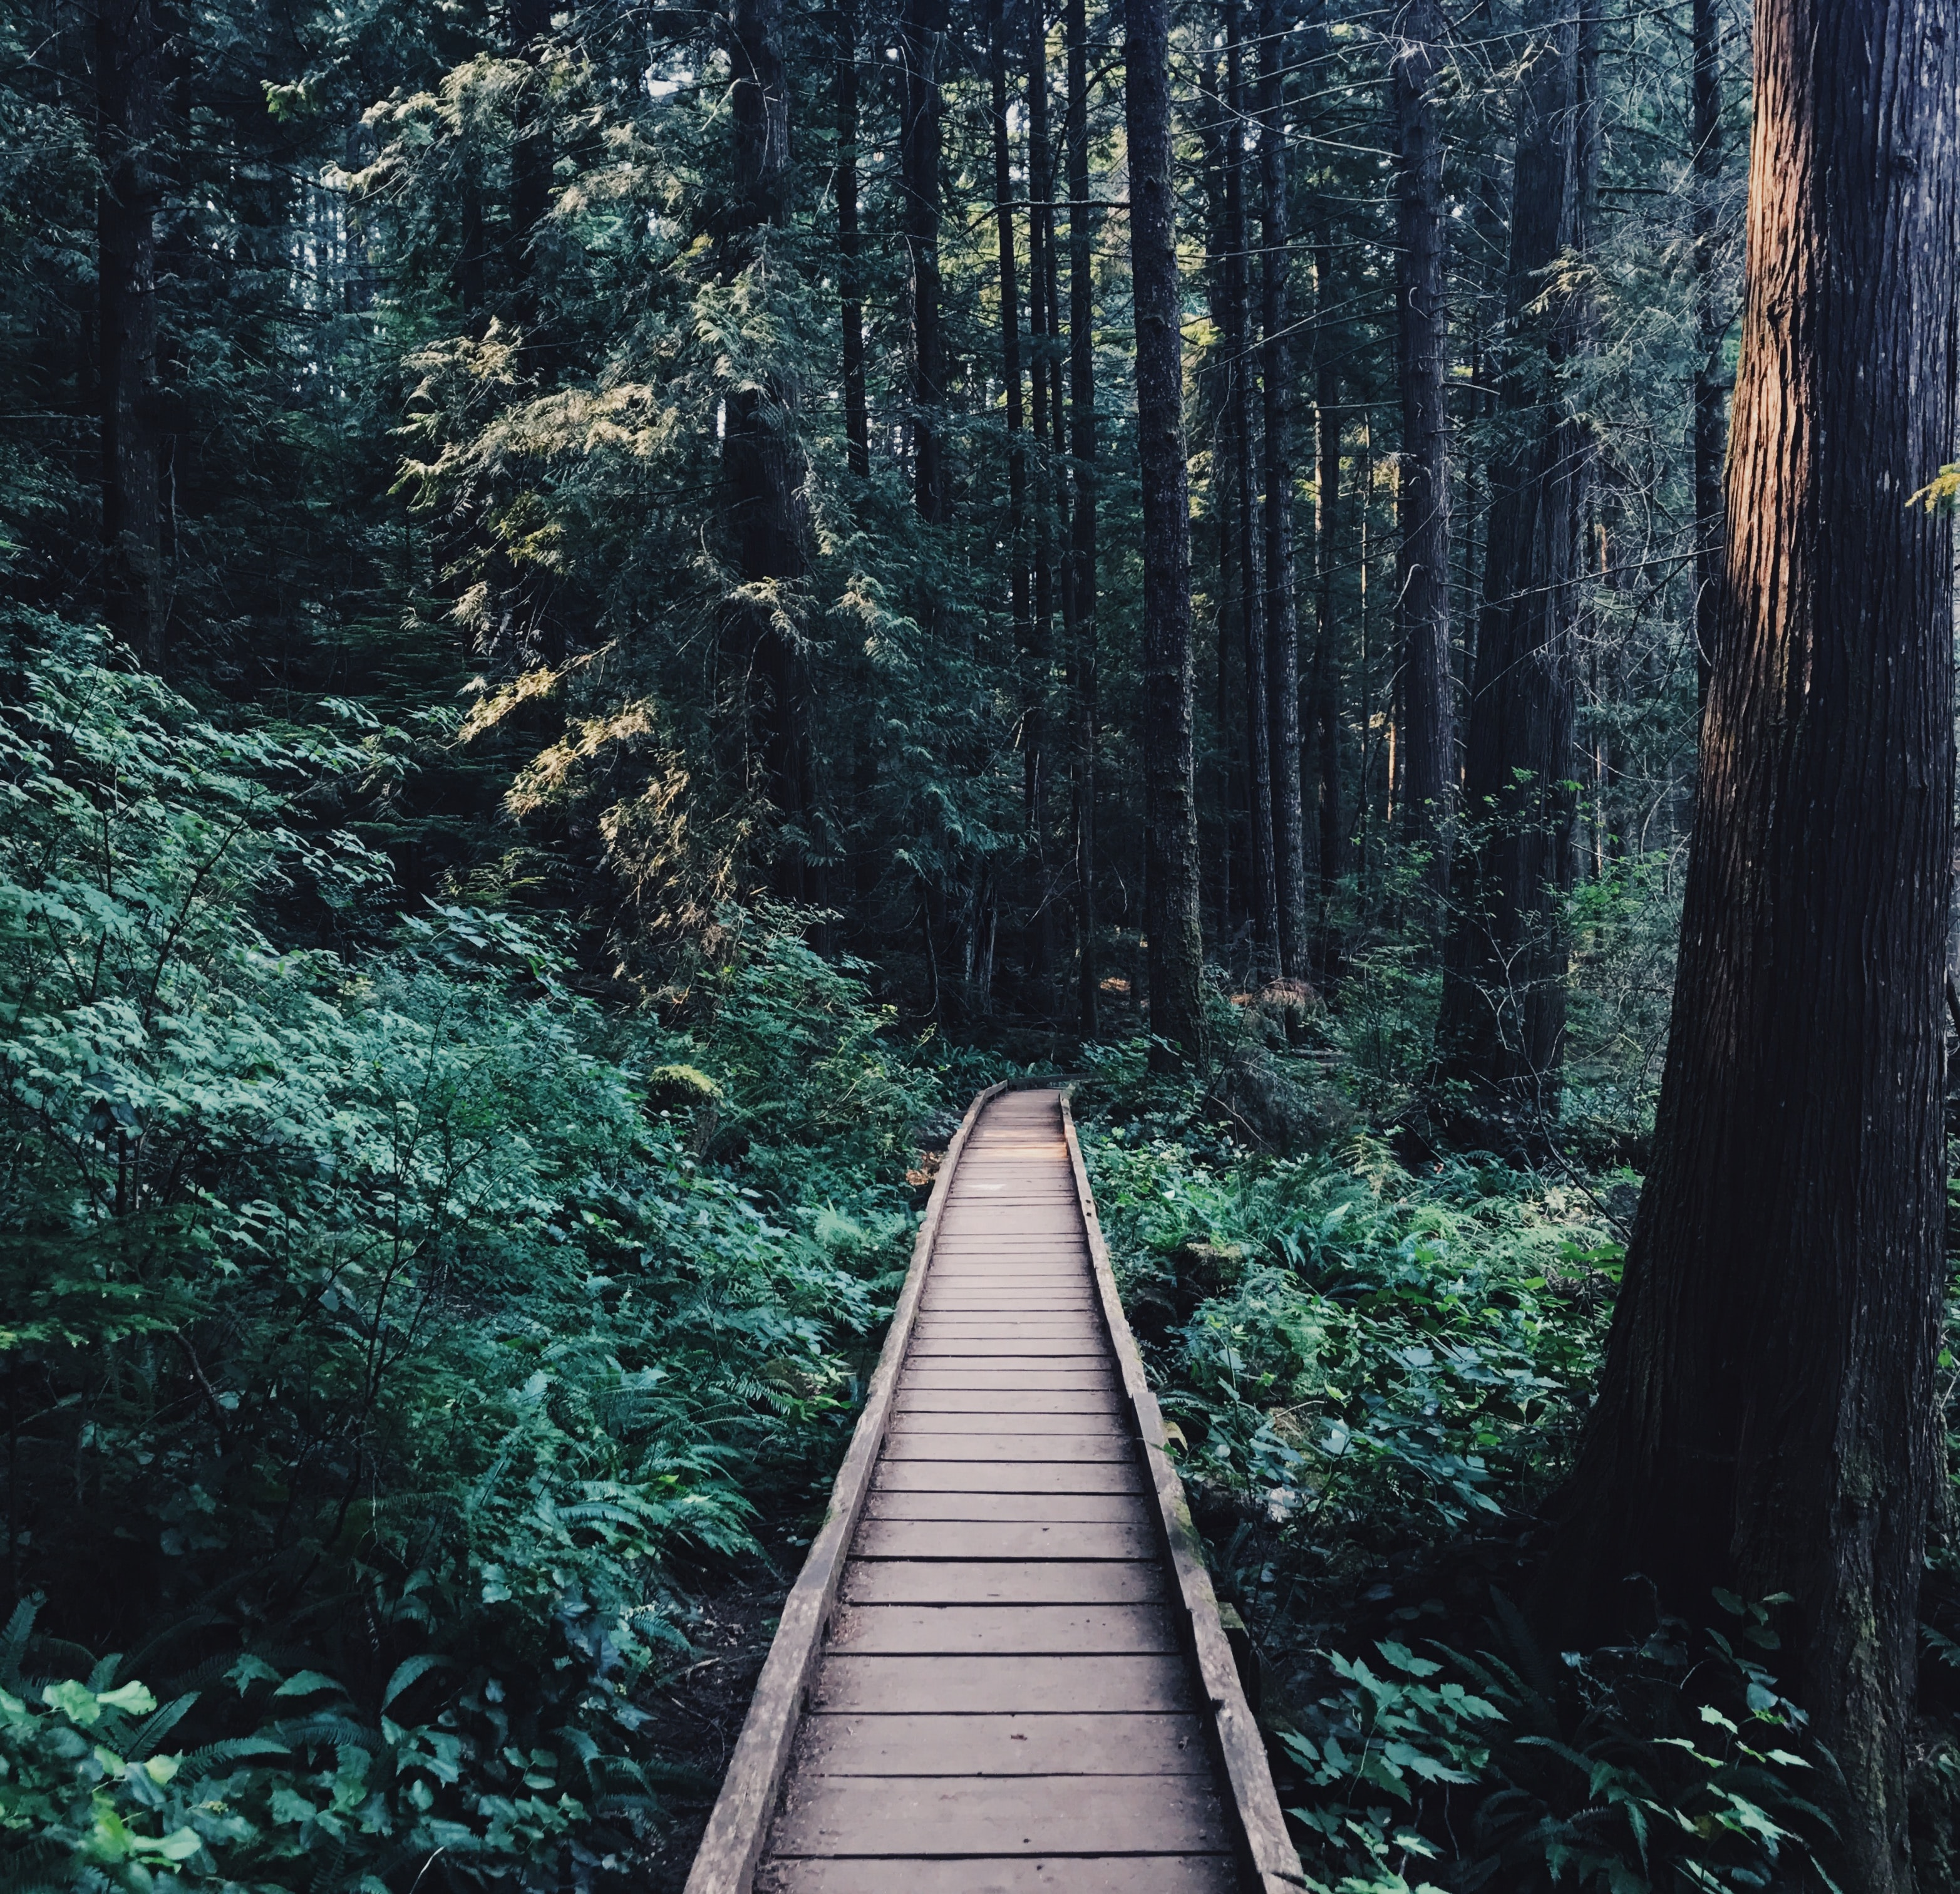 A narrow wooden bridge in a dense forest at Whyte Lake Trail